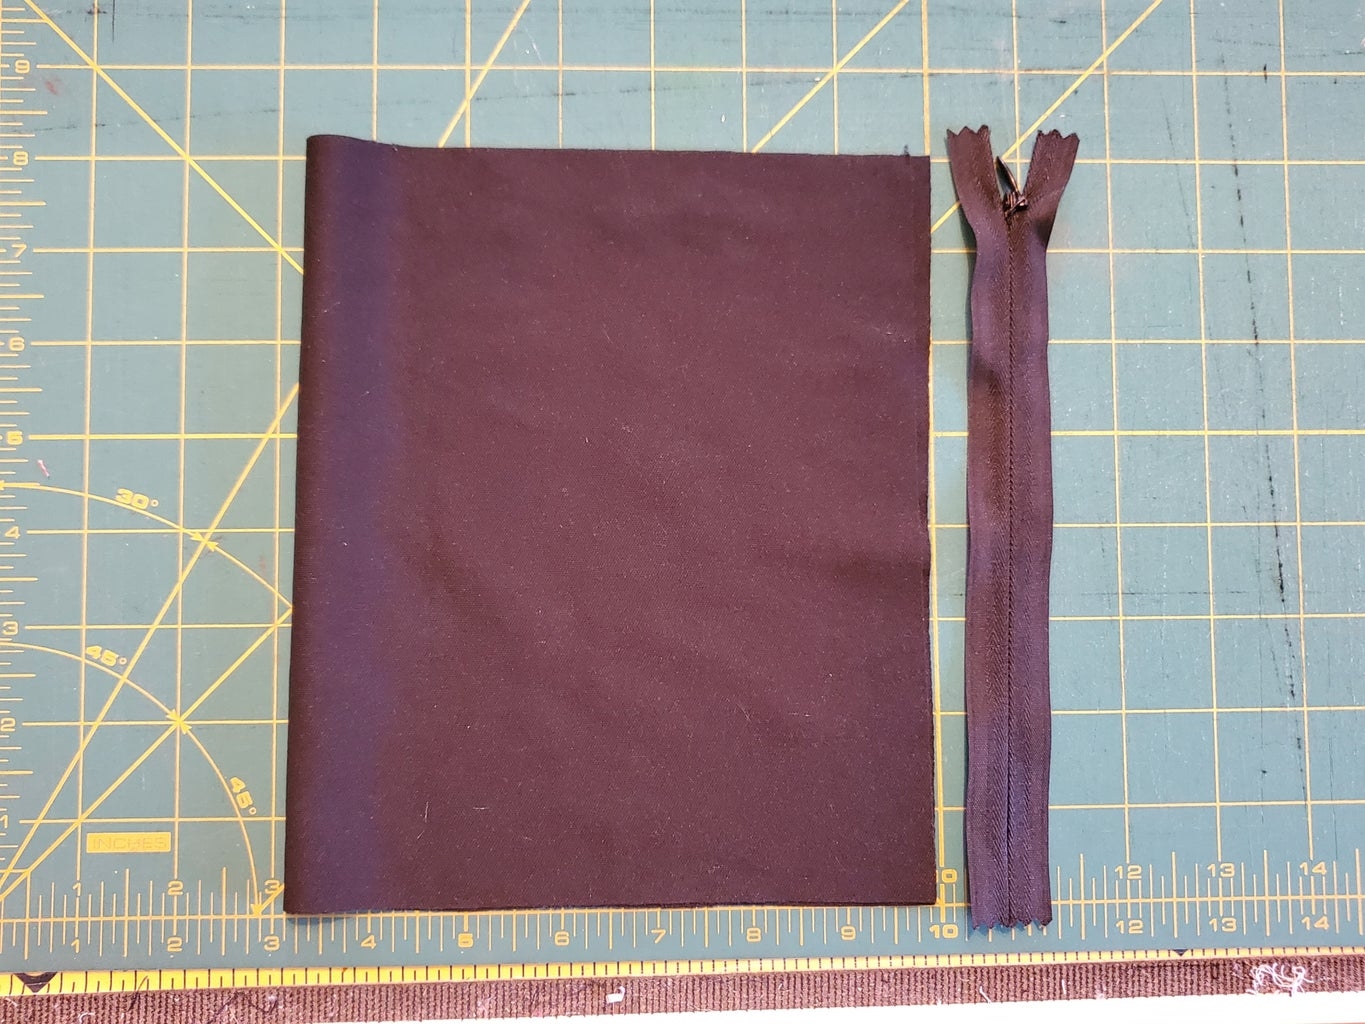 Lay Out and Cut Your Pocket Fabric